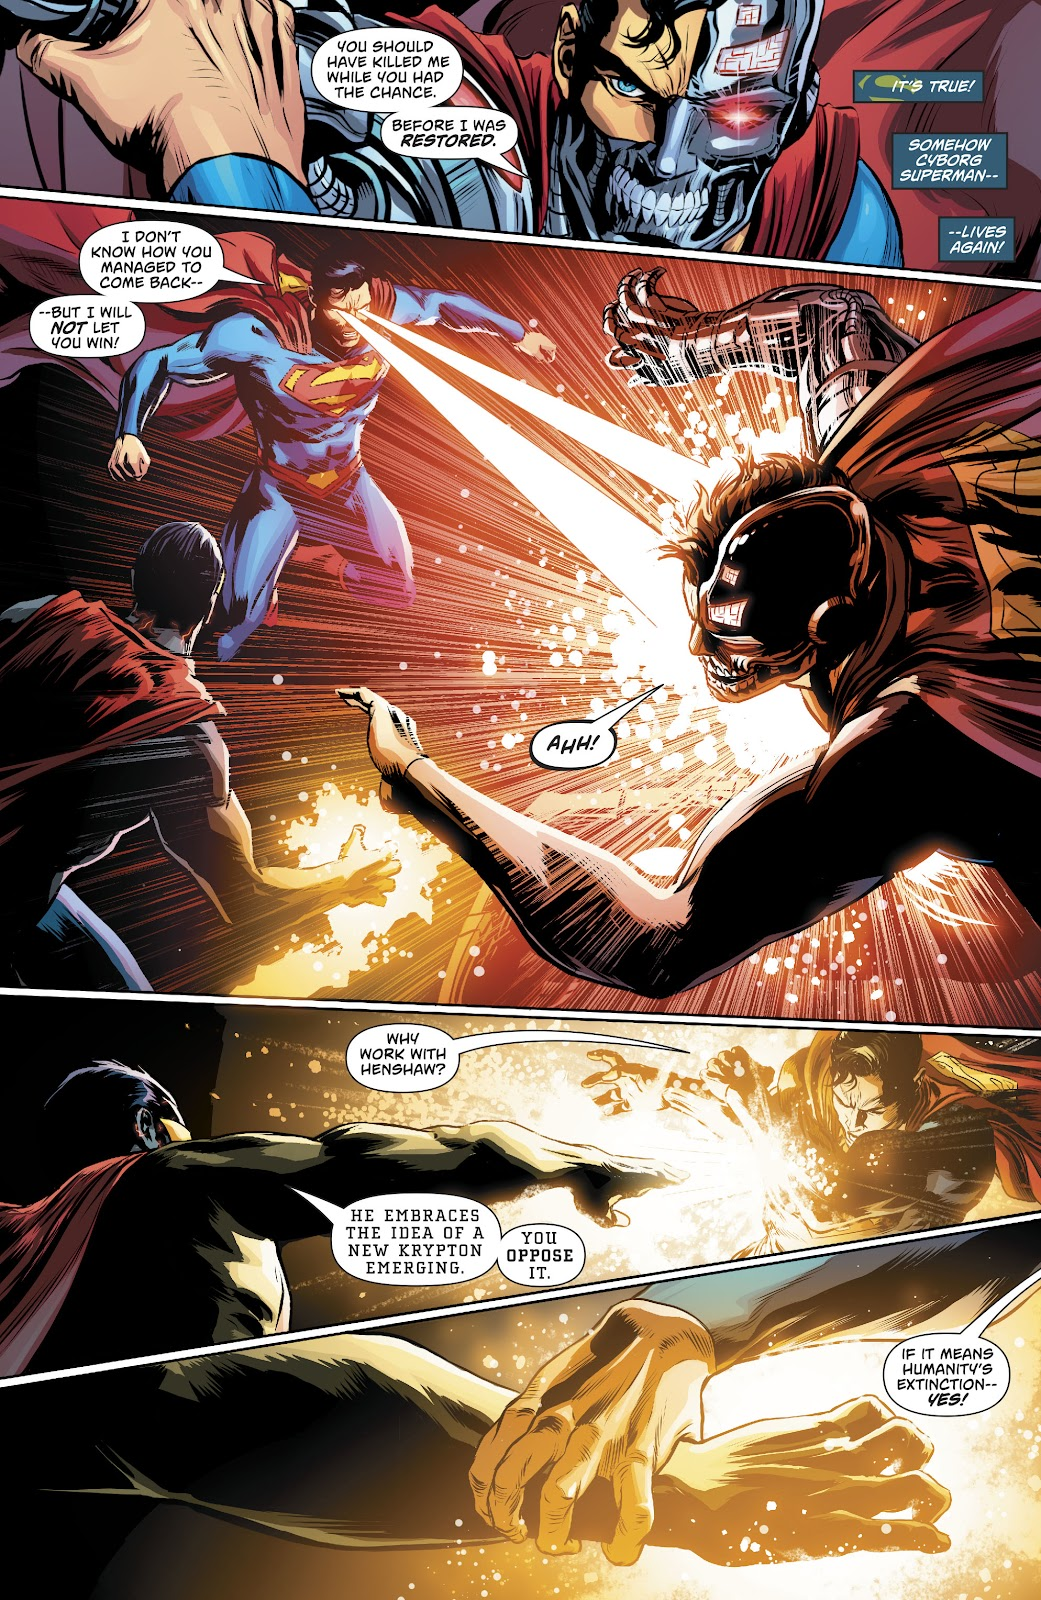 Read online Action Comics (2016) comic -  Issue #980 - 20